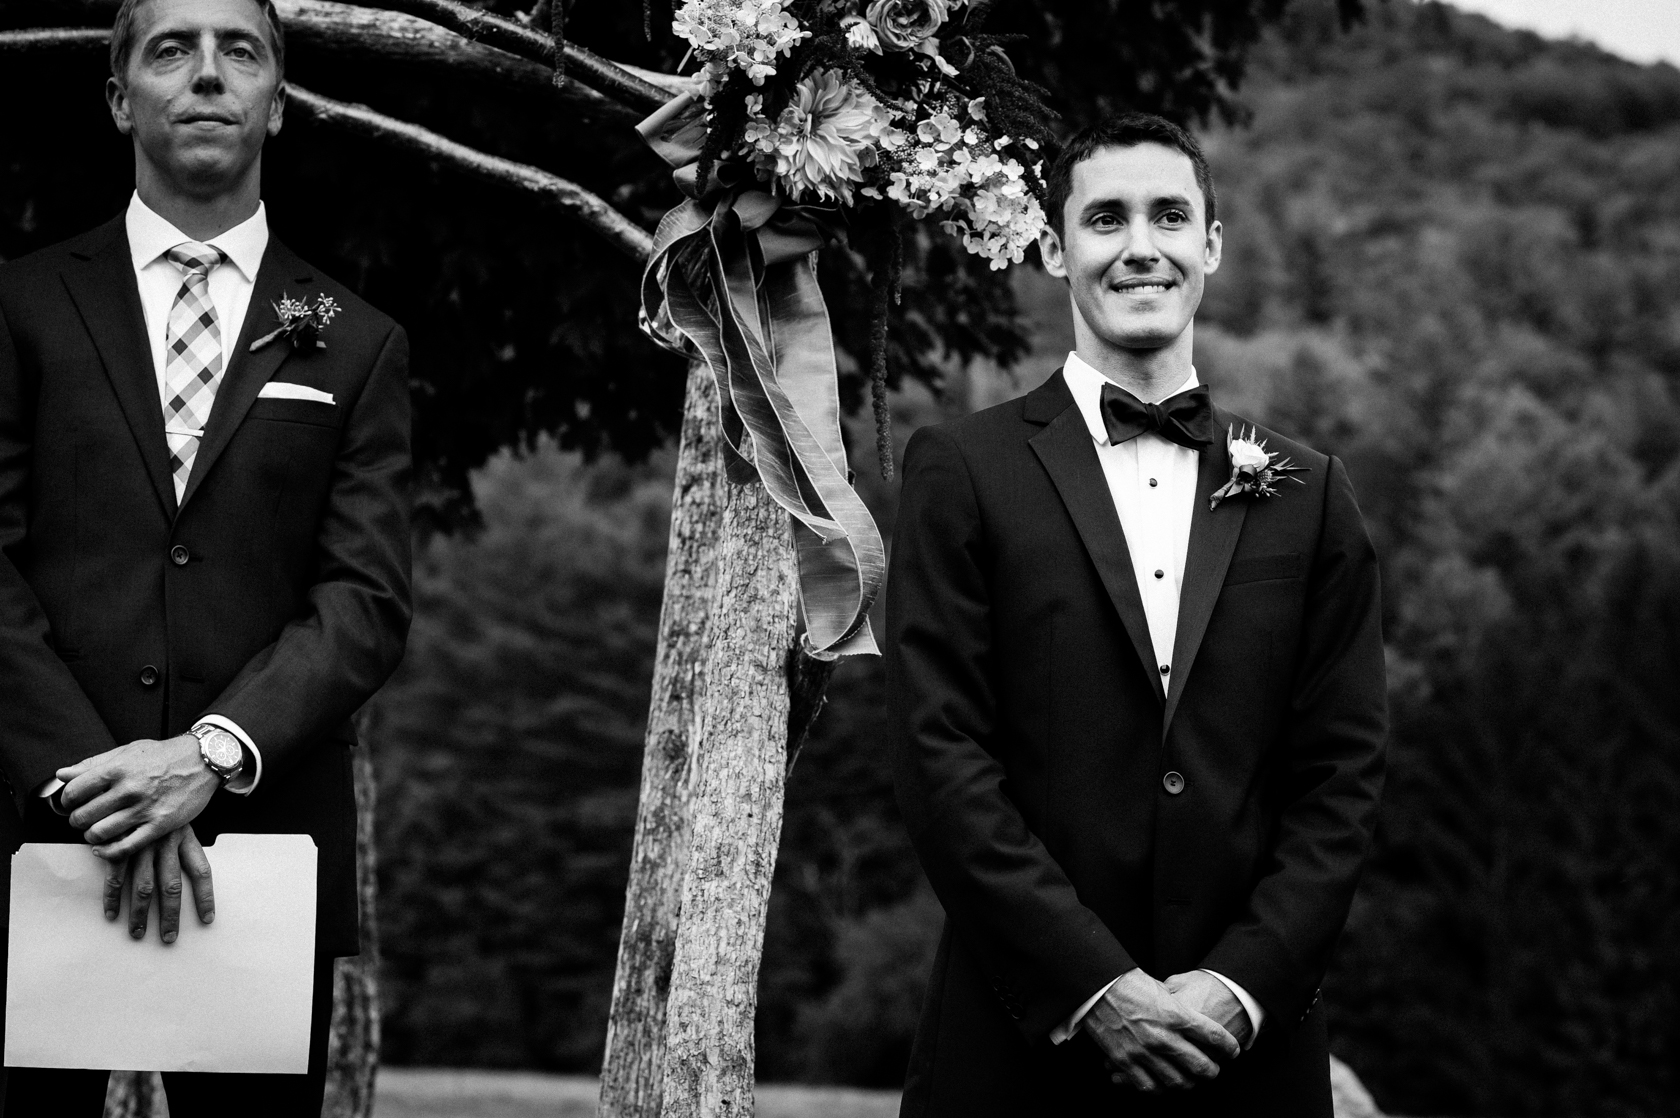 groom waits for his bride at the end of the ceremony aisle